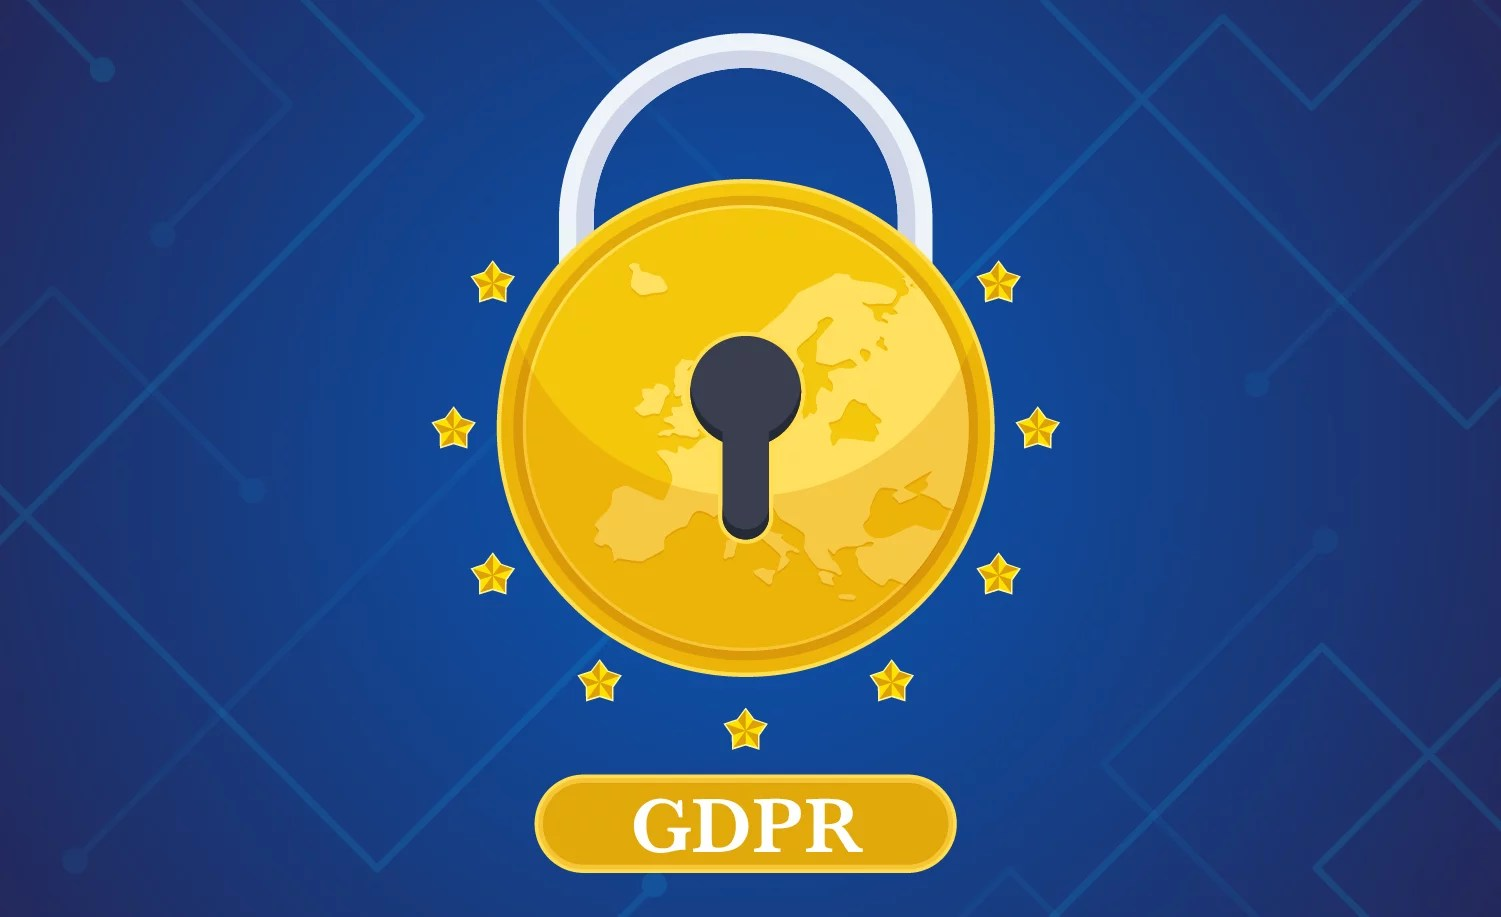 How to Ensure Your Lead Generation is General Data Protection Regulation (GDPR) Compliant